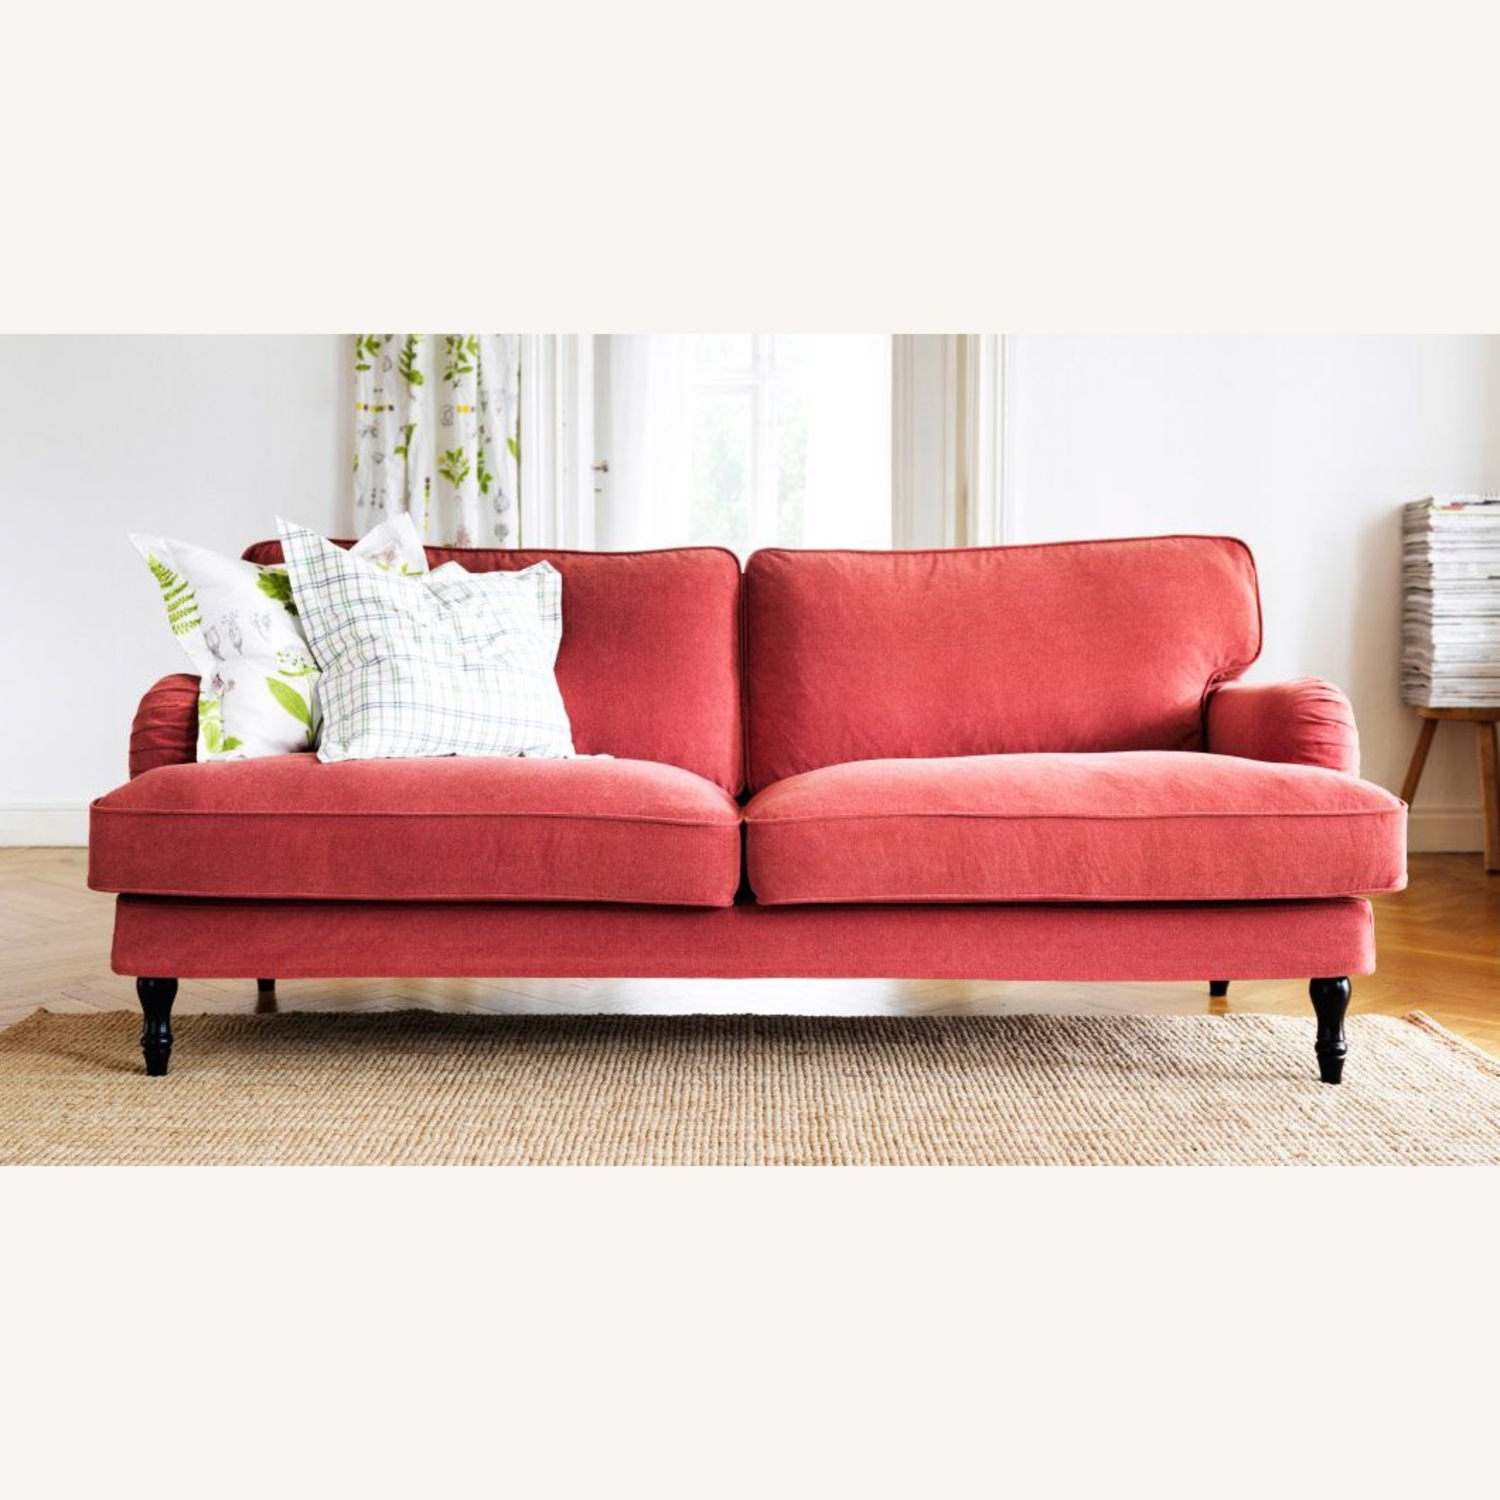 IKEA Red Stocksund Couch - image-0